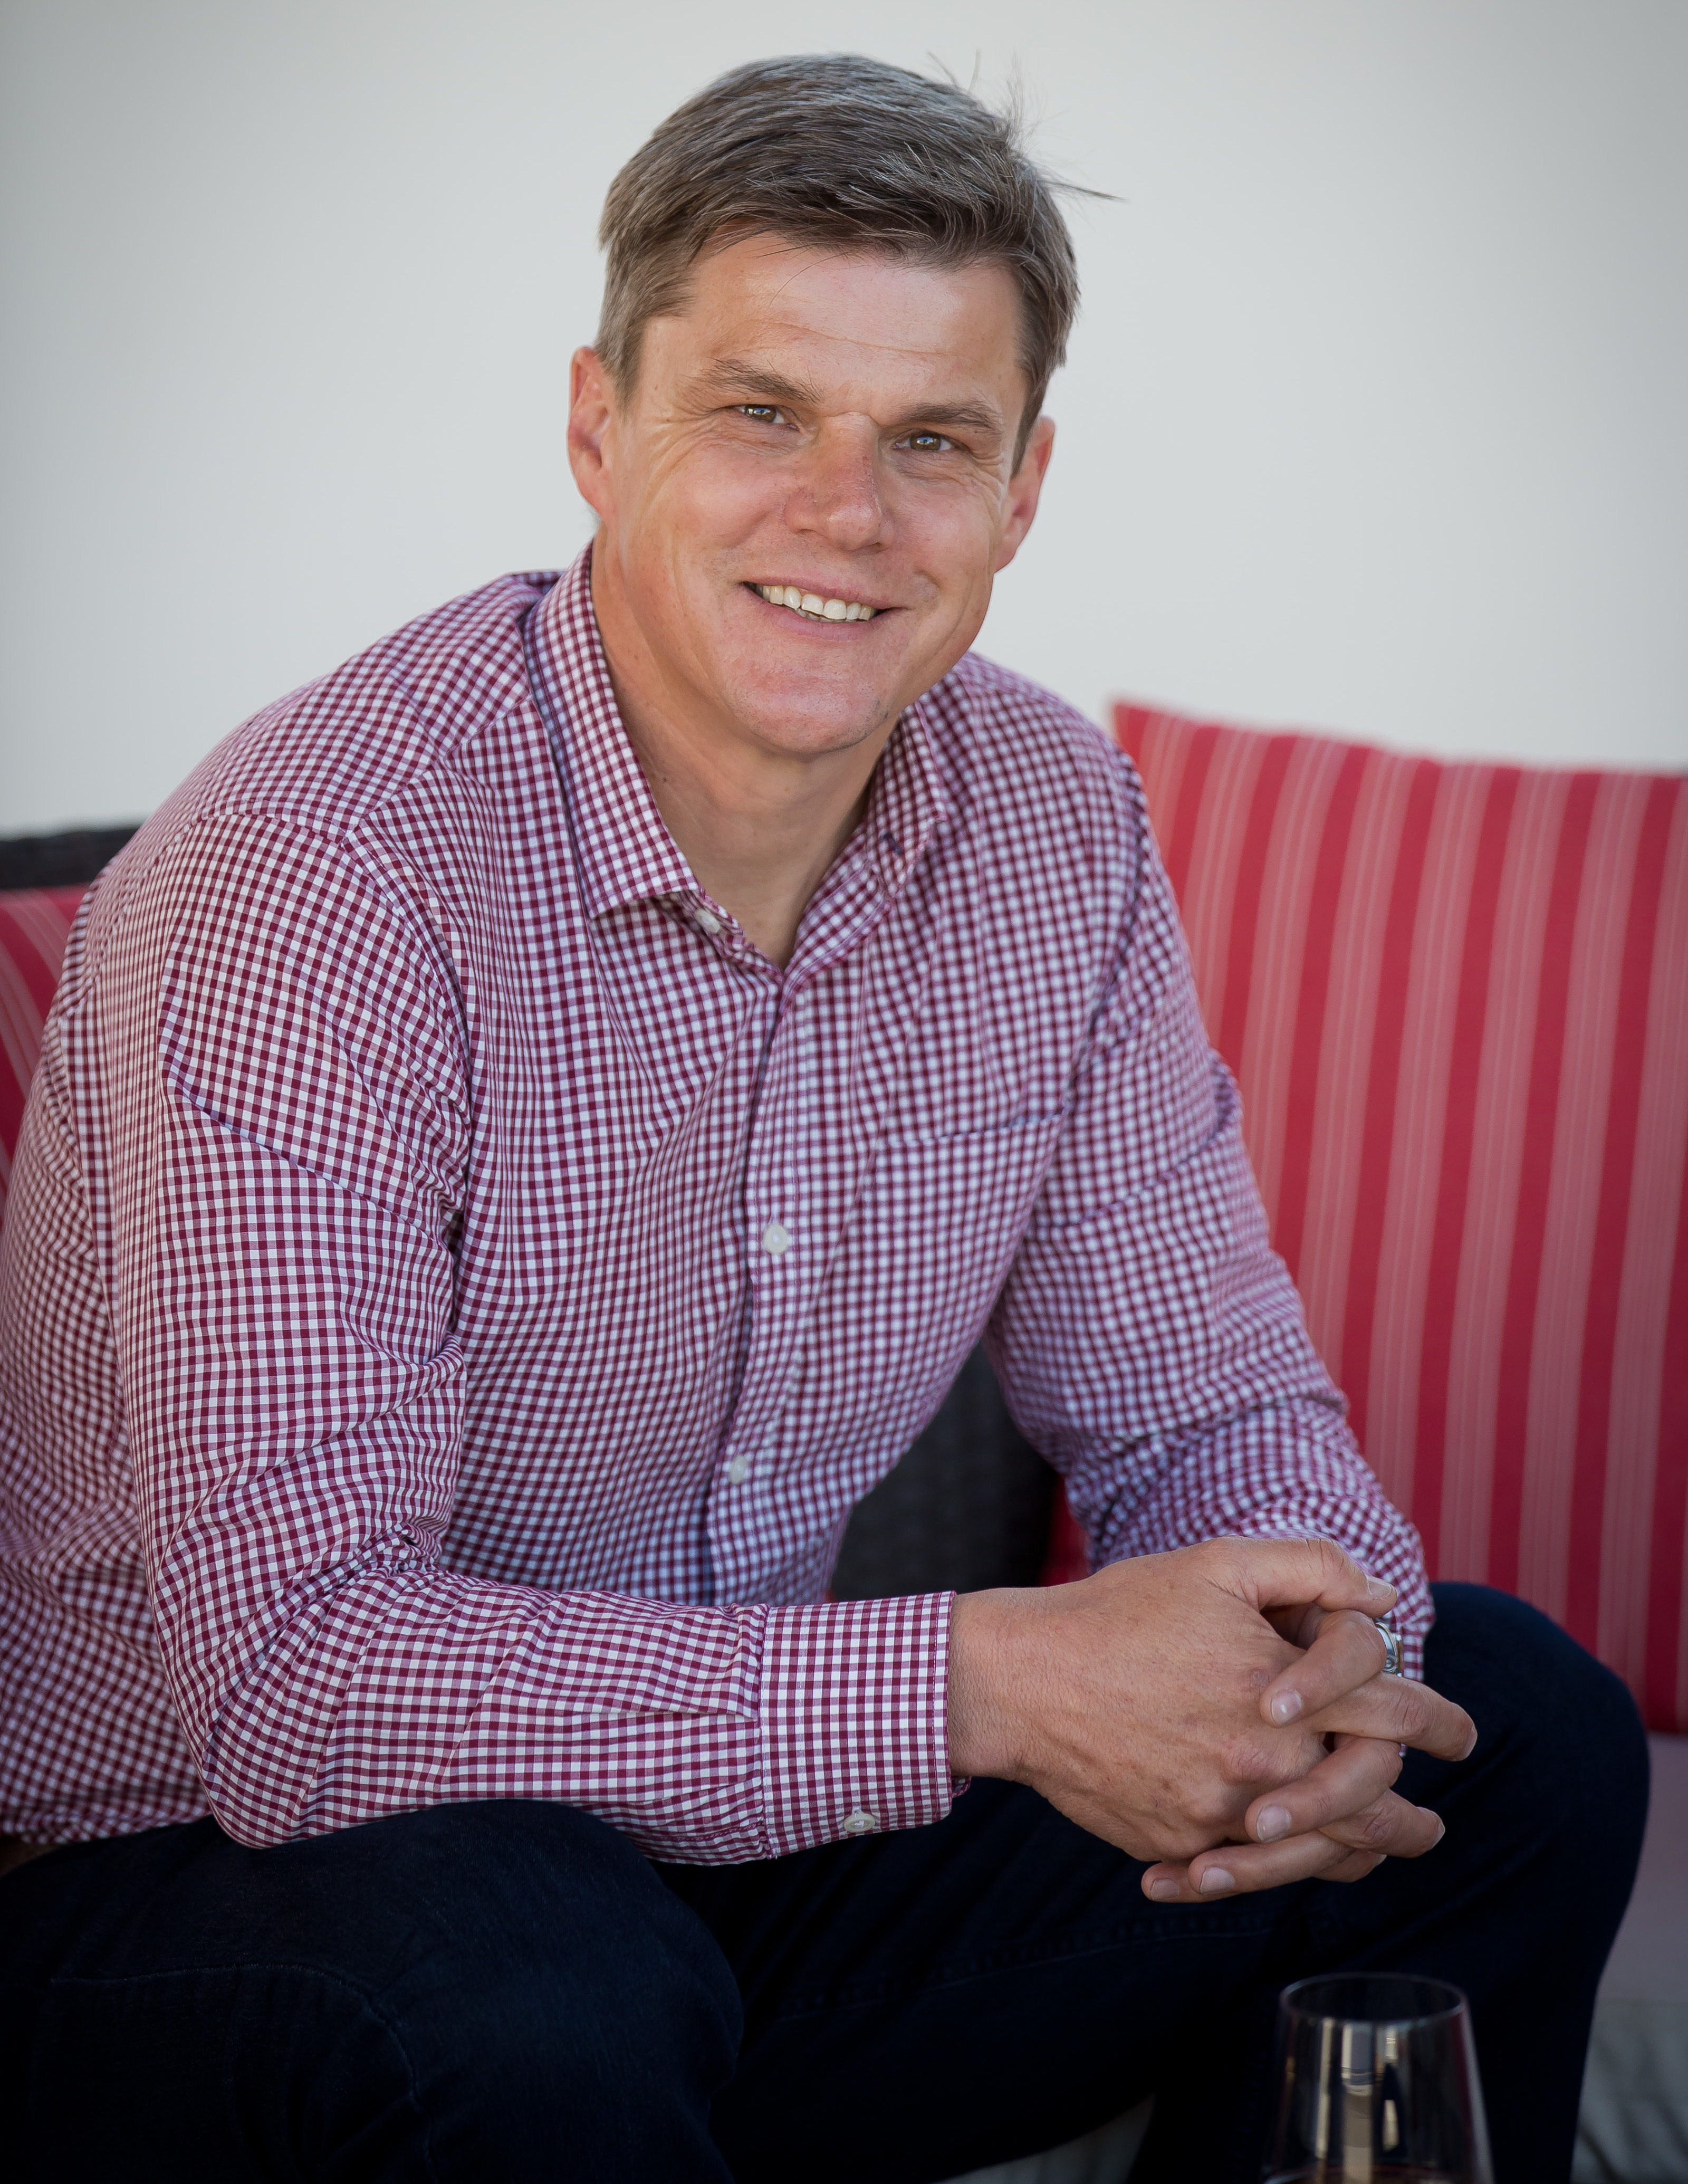 Rico Basson, the managing director of Vinpro. Photo: Supplied